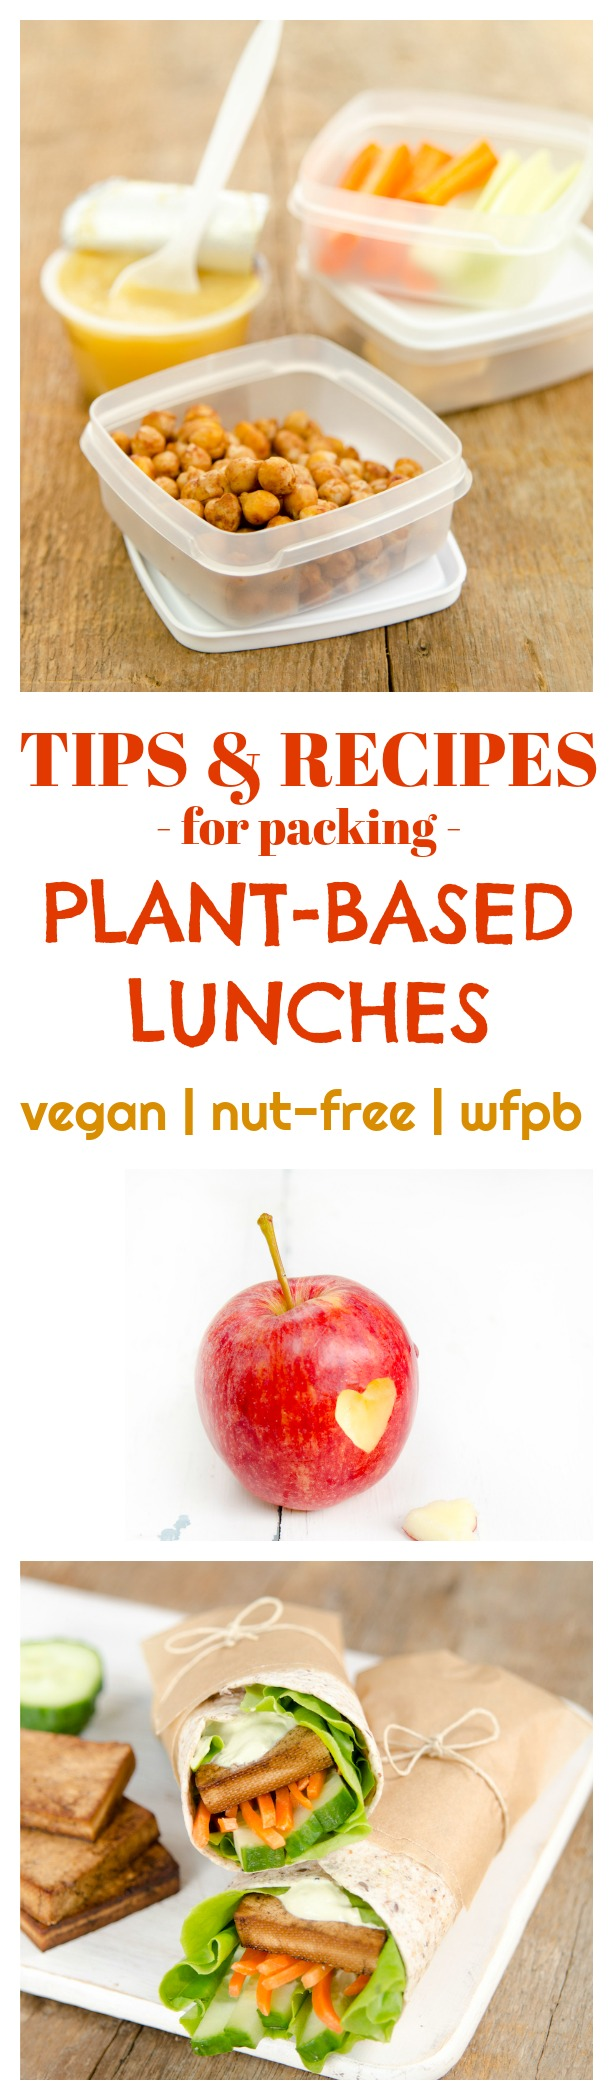 Tips & Recipes for packing Plant-Based Lunches | vegan lunch box ideas | how to pack plant-based lunches | plant-based lunch recipes | nut-free lunch recipes | healthy lunch box ideas | packing a healthy lunch || Plant Powered Kitchen